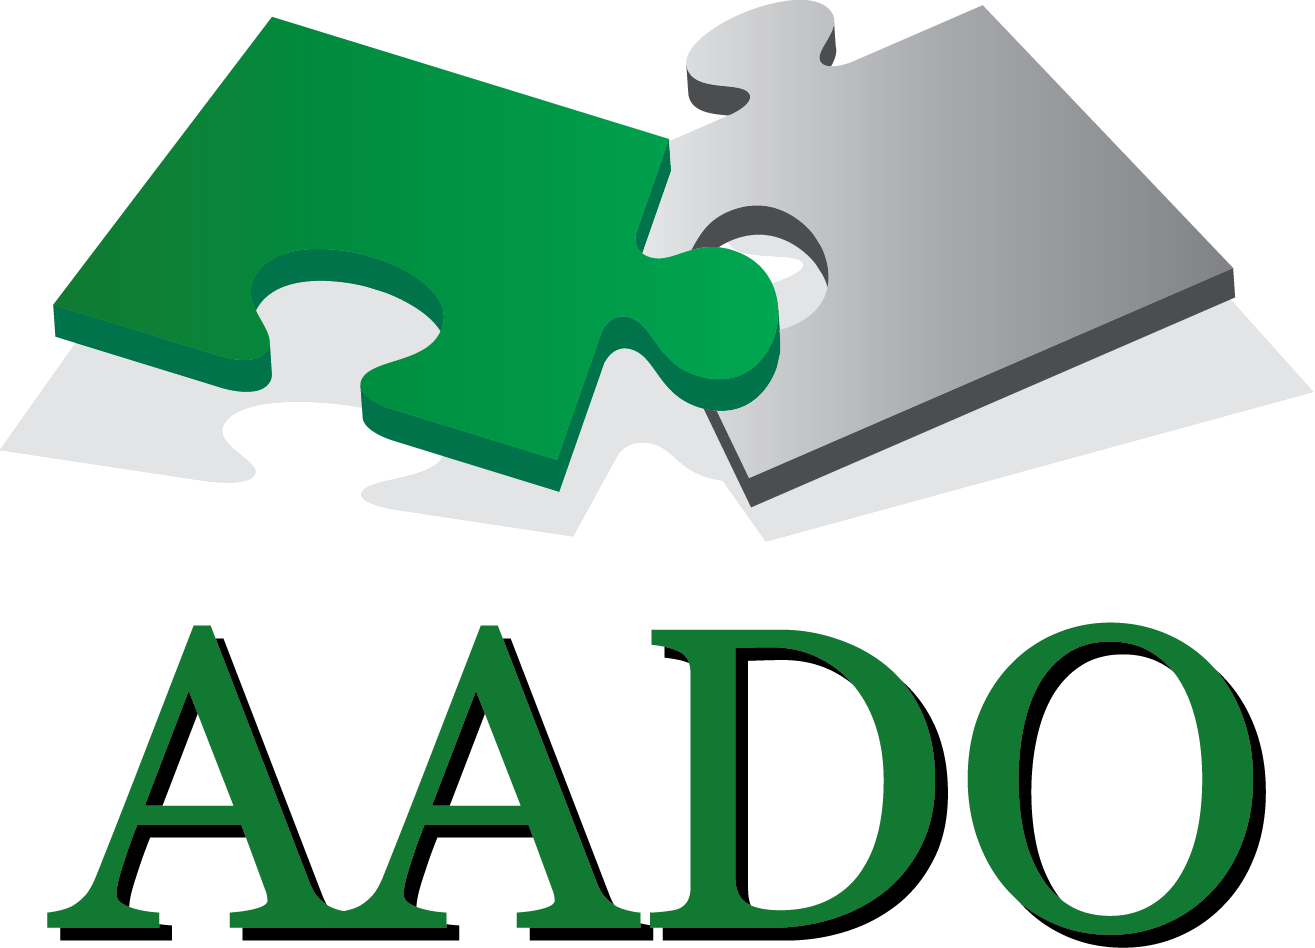 AADO - AFRICAN AMERICAN DEVELOPMENT OFFICERS